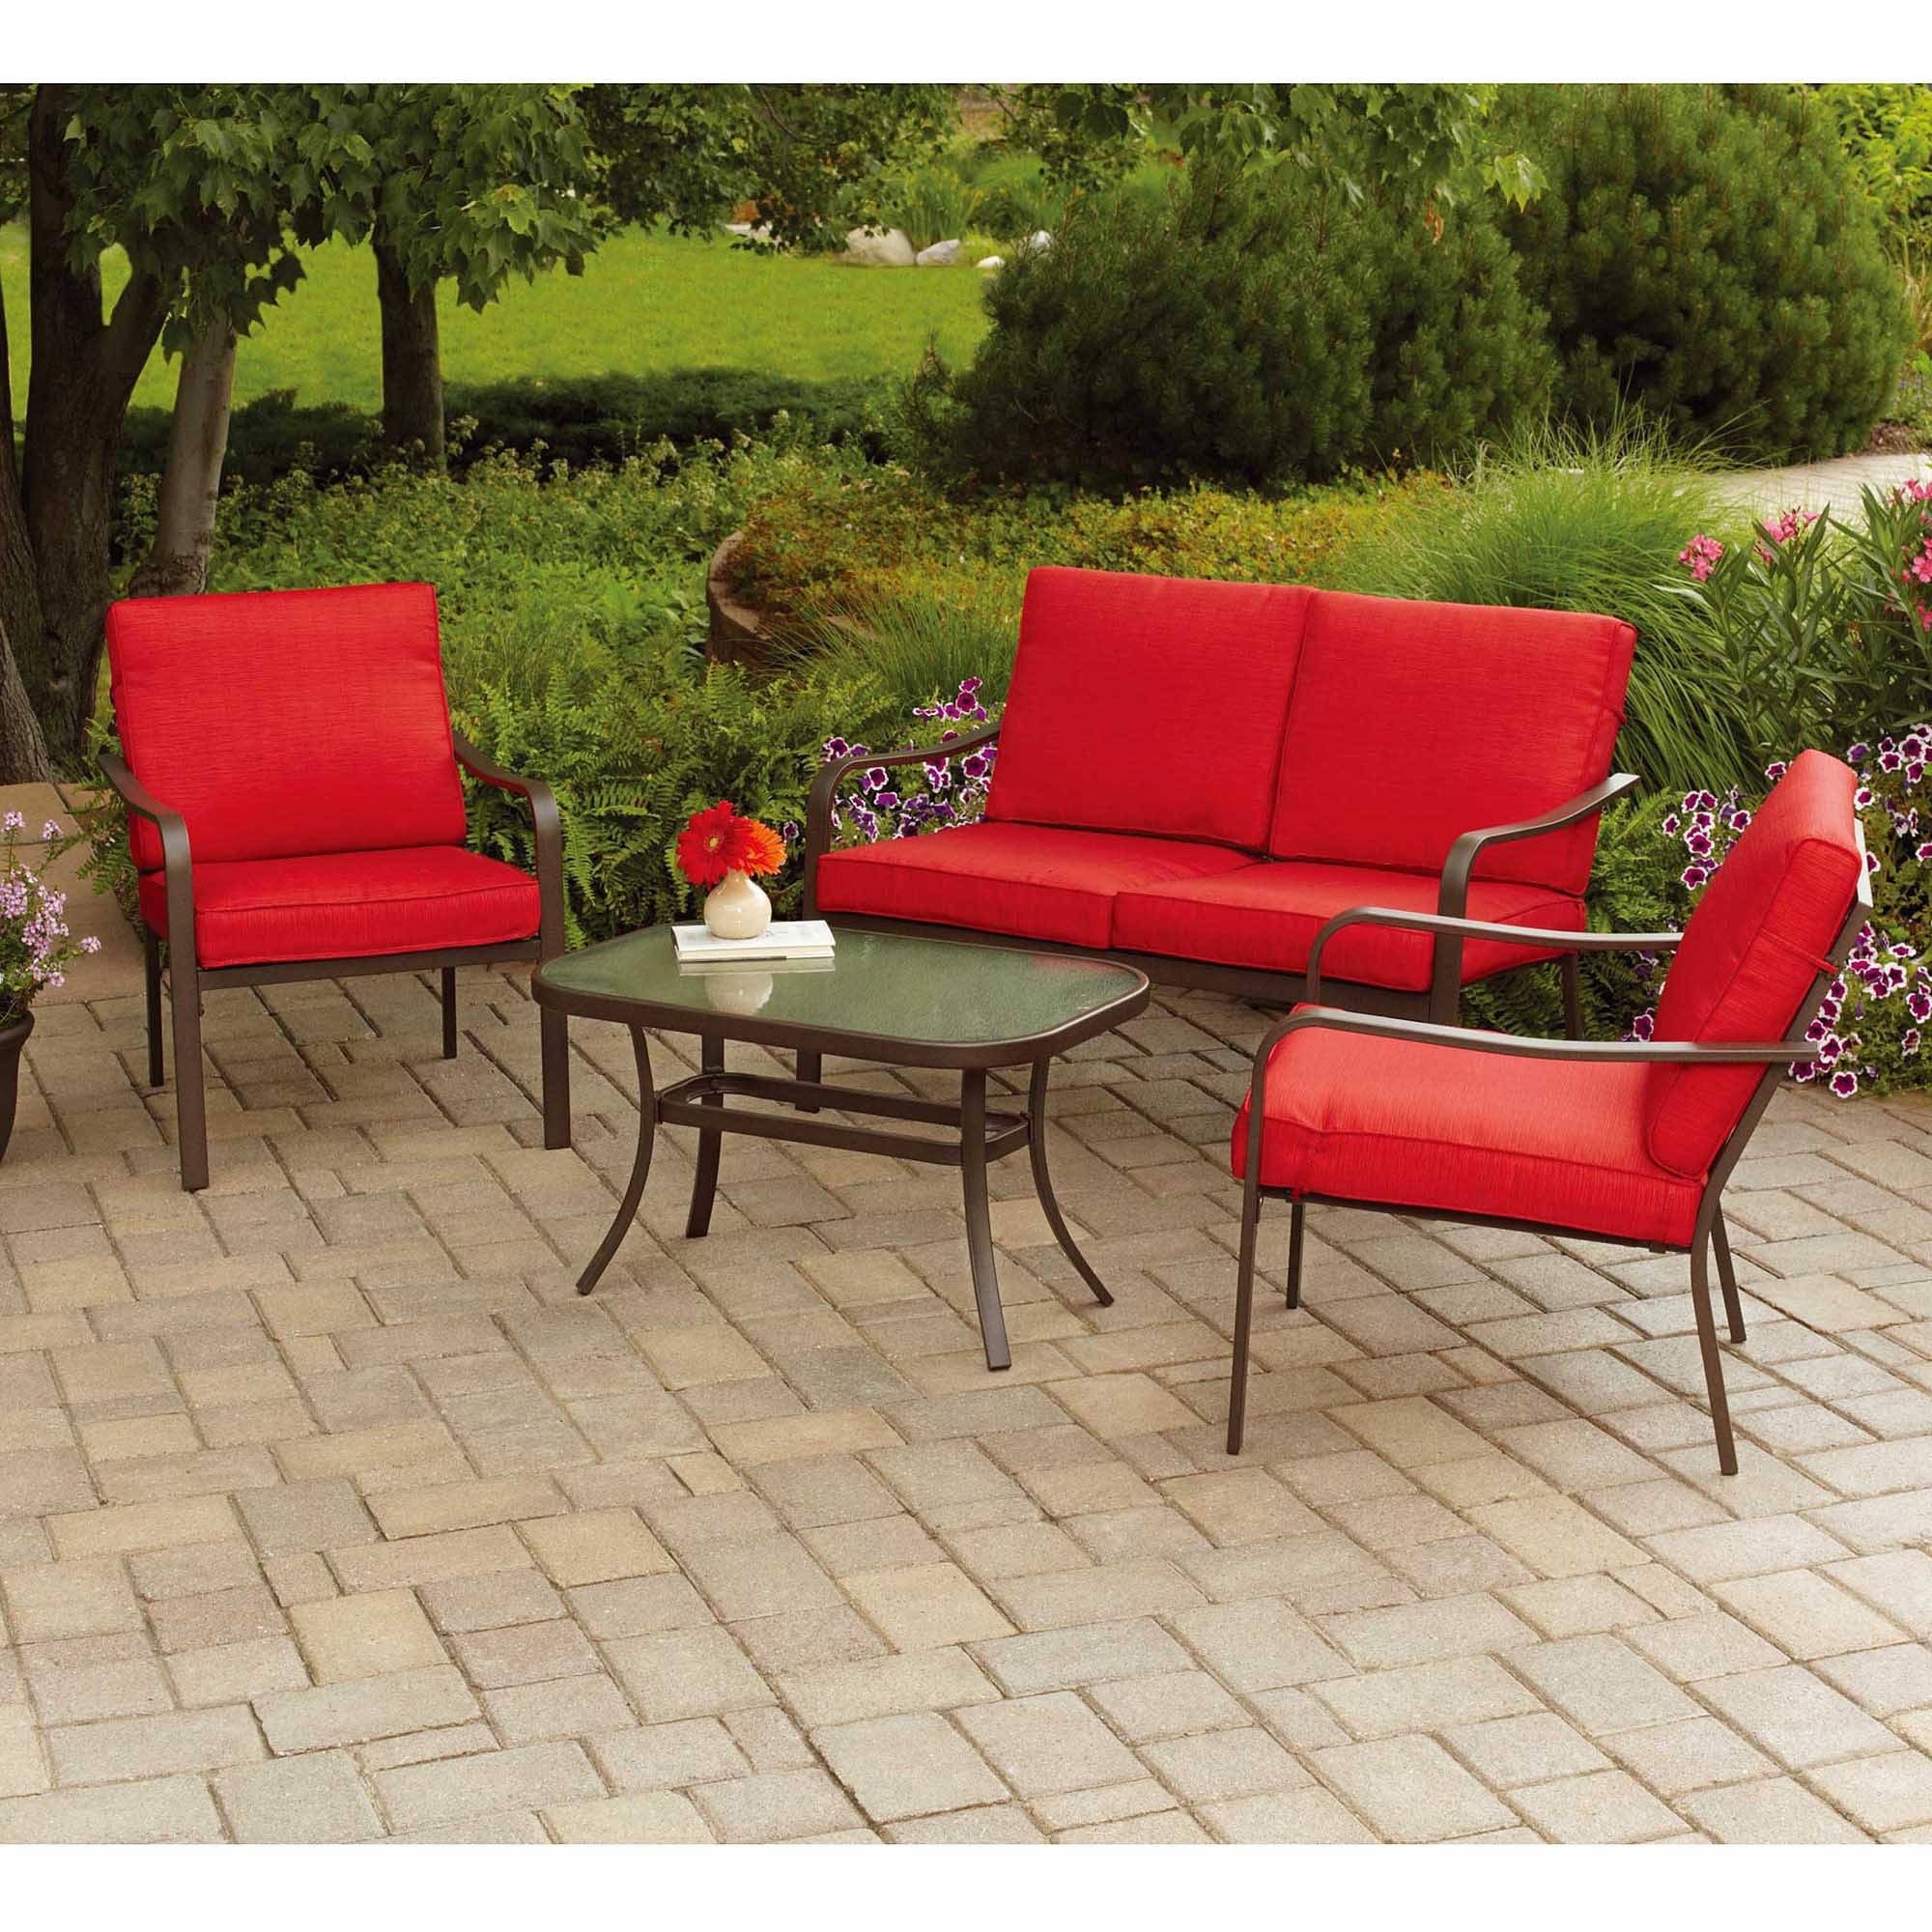 Best And Newest Mainstays Stanton Cushioned 4 Piece Patio Conversation Set, Seats 4 With Regard To Sears Patio Furniture Conversation Sets (View 2 of 15)